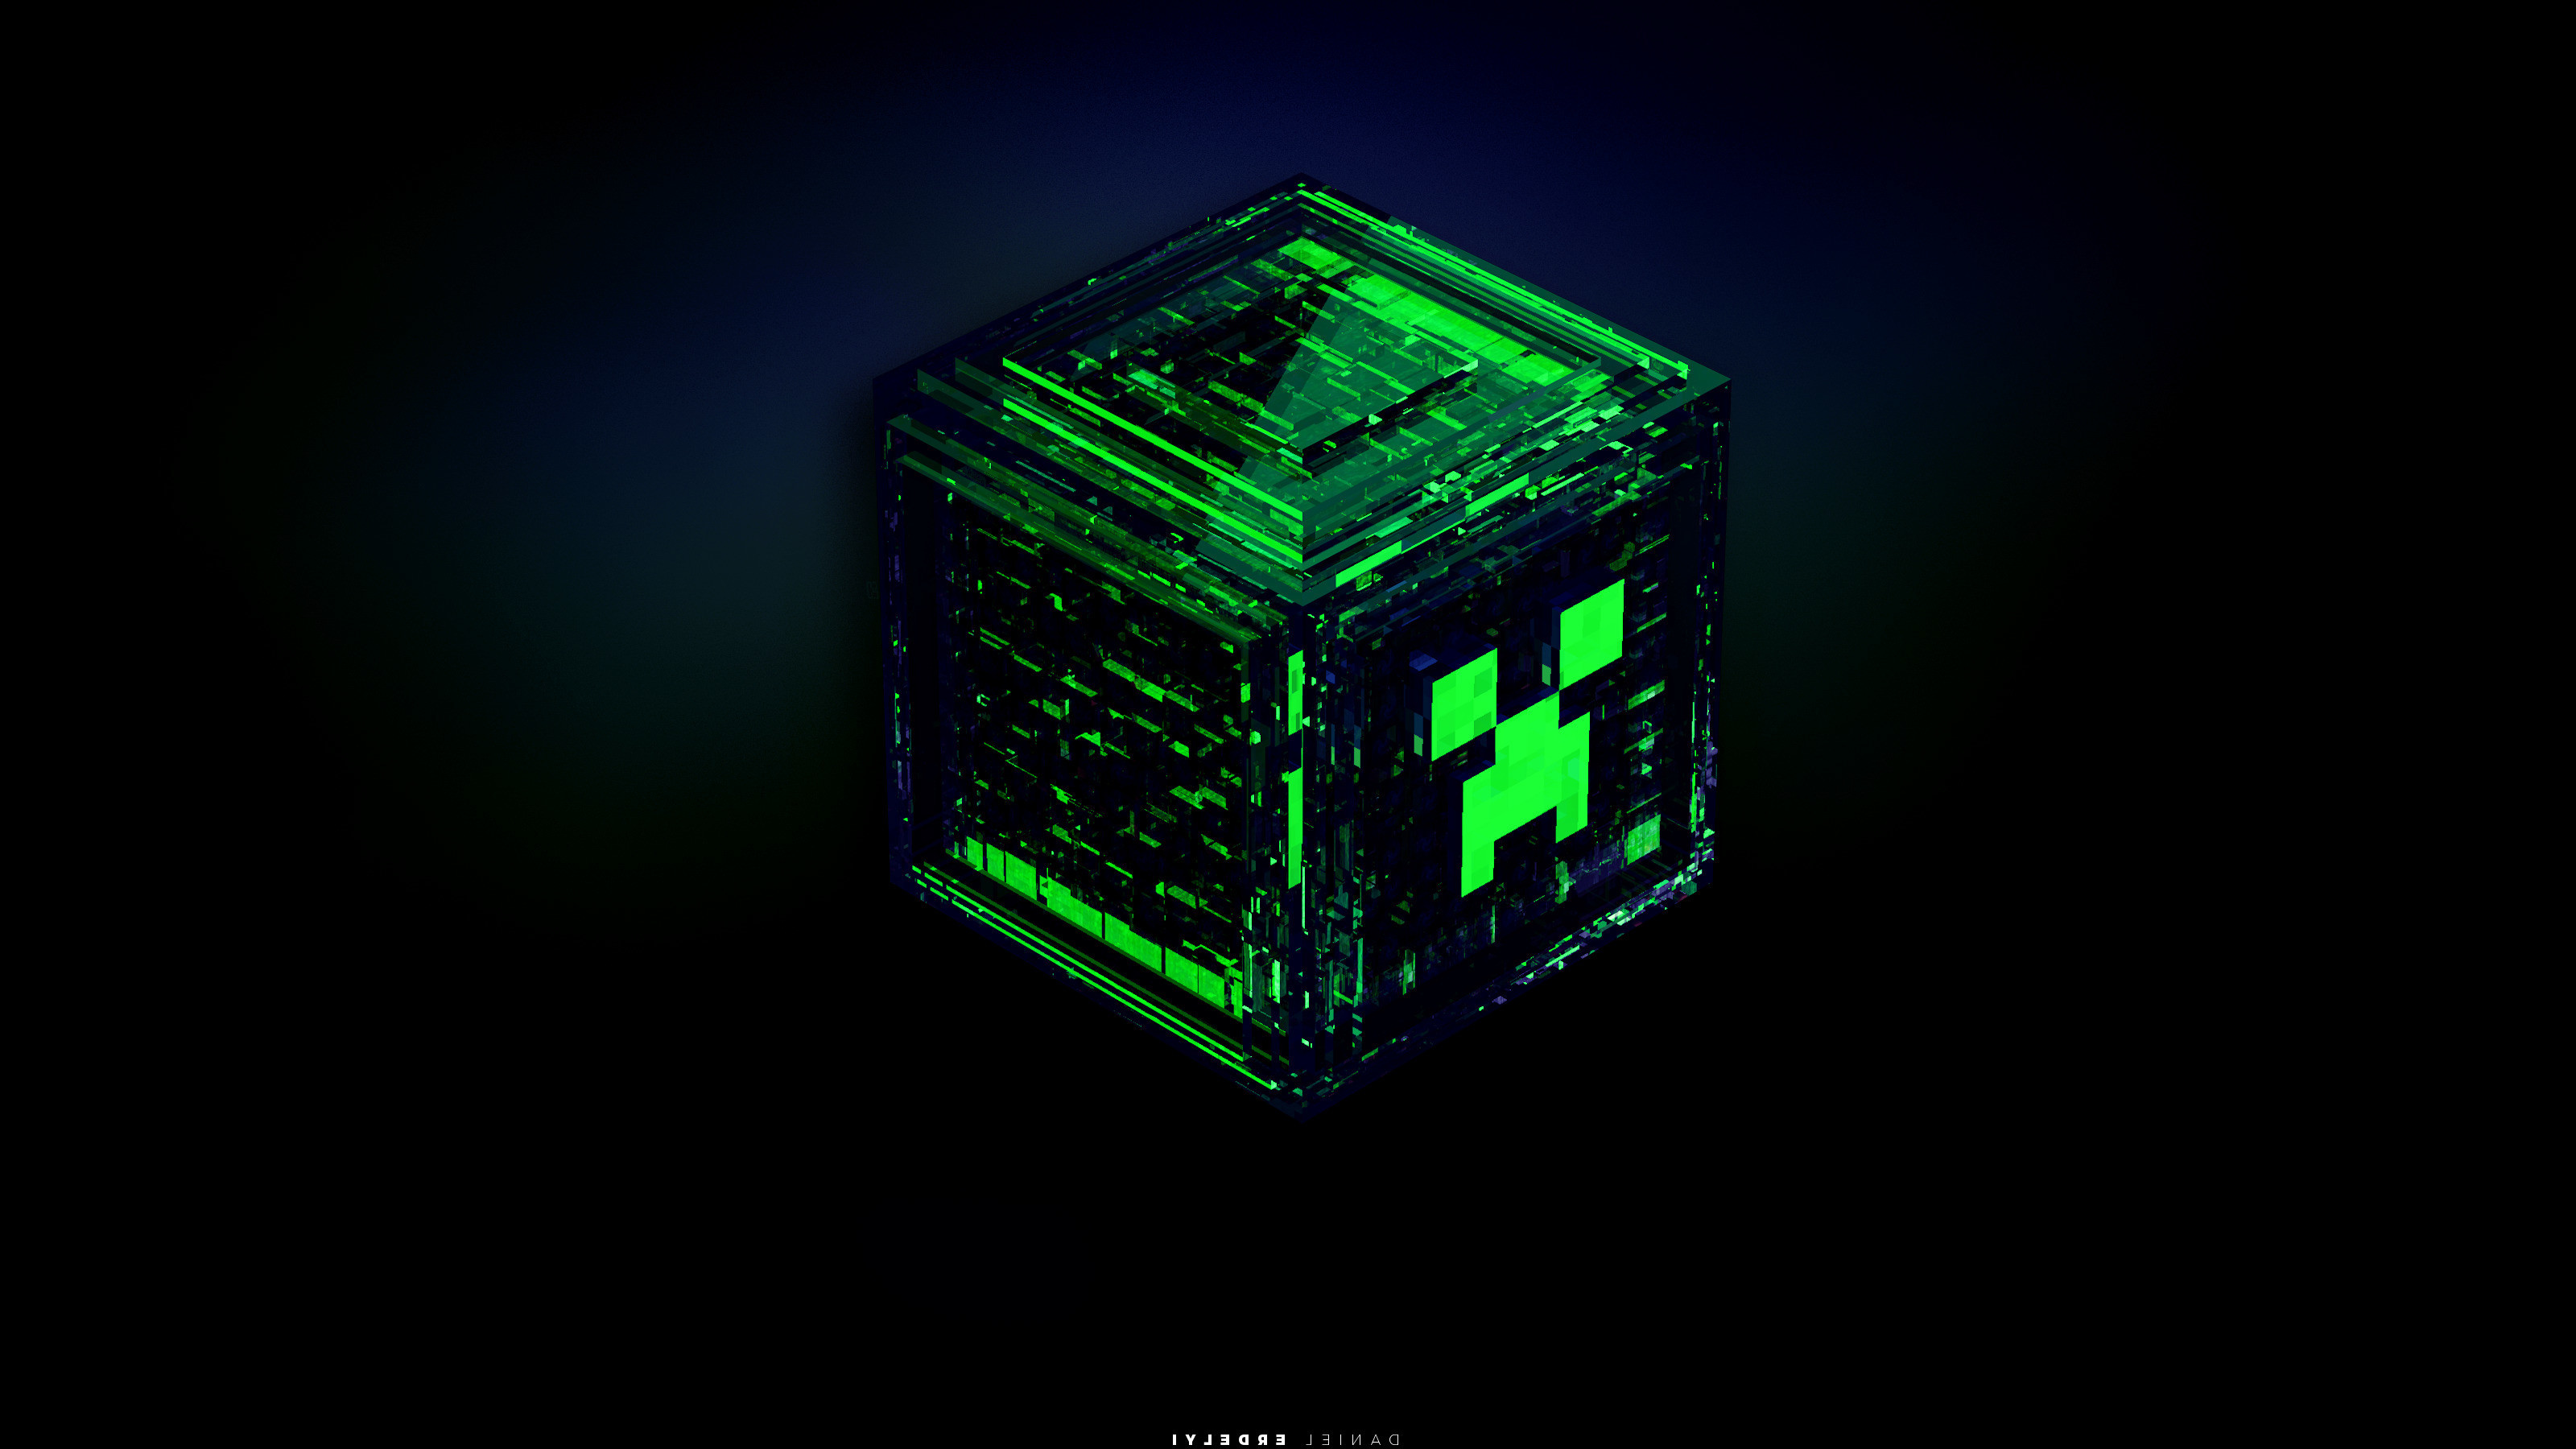 3200x1800 1920x1080 Minecraft Creeper Wallpapers 3D HD Wallpaper